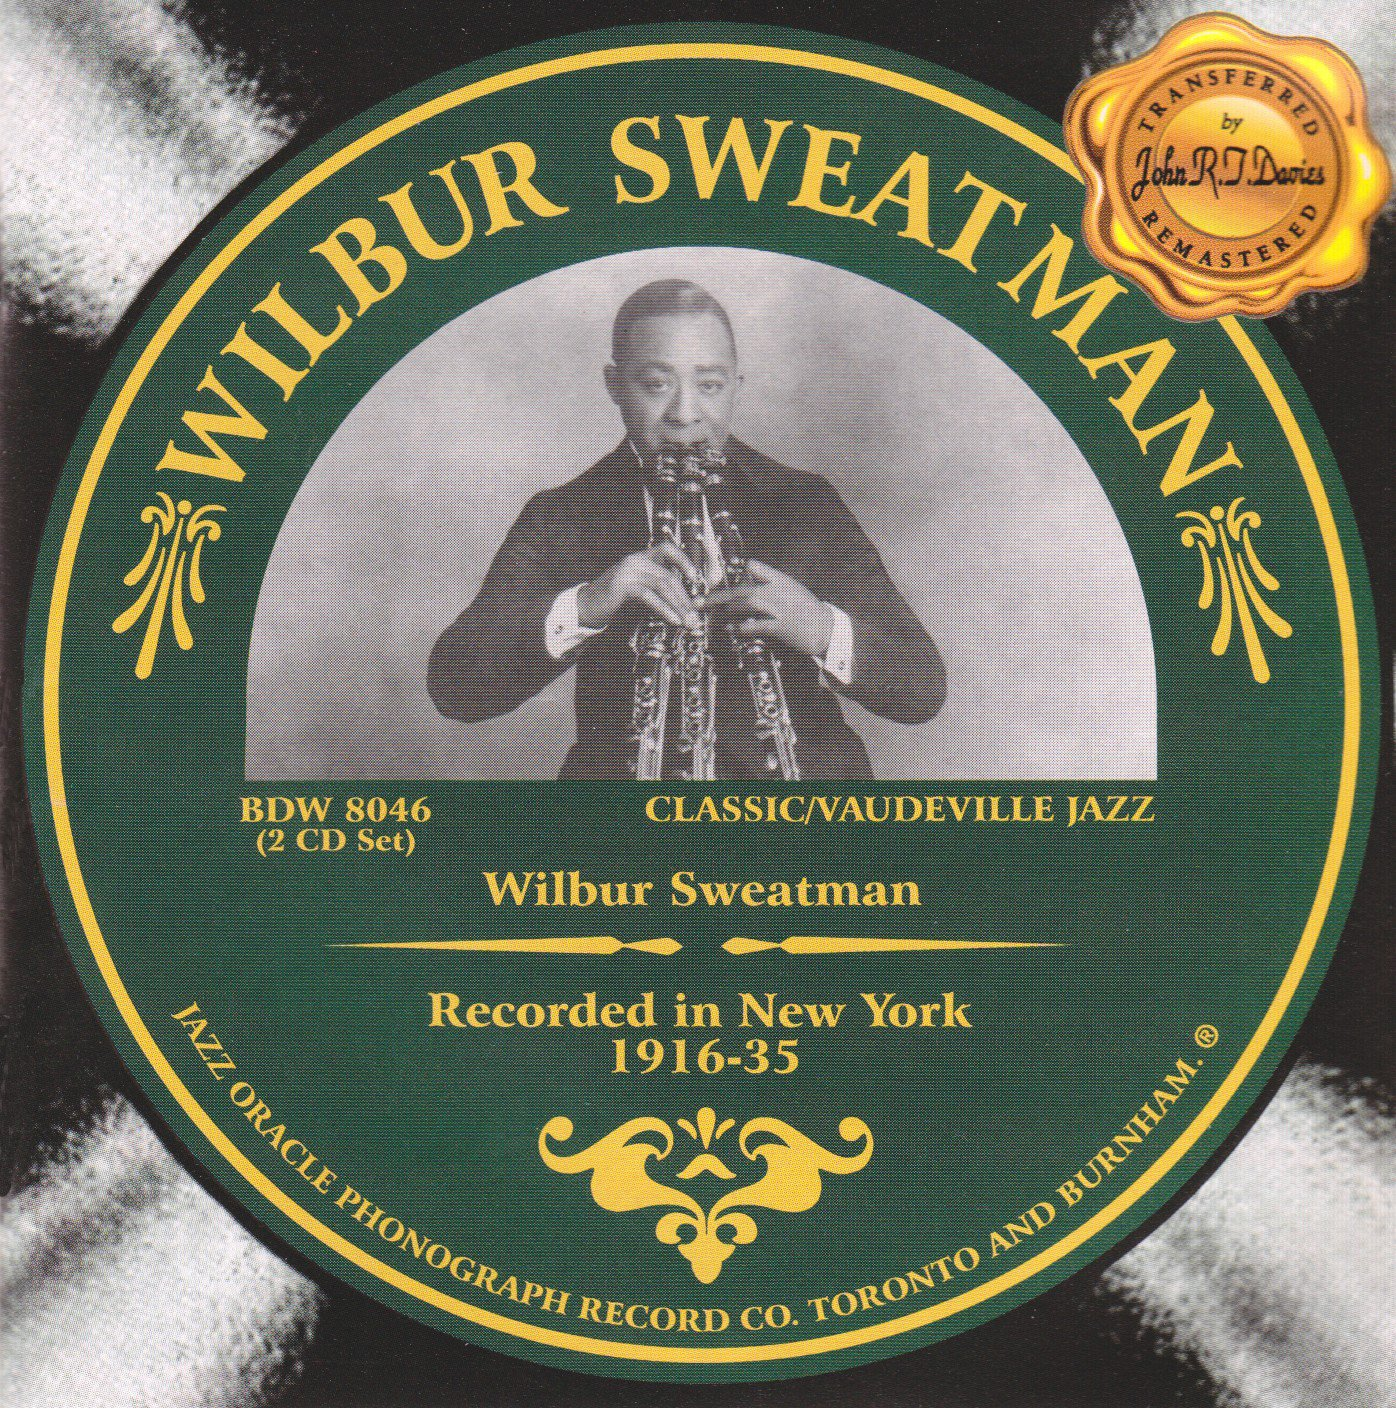 Recorded in New York 1916-1935